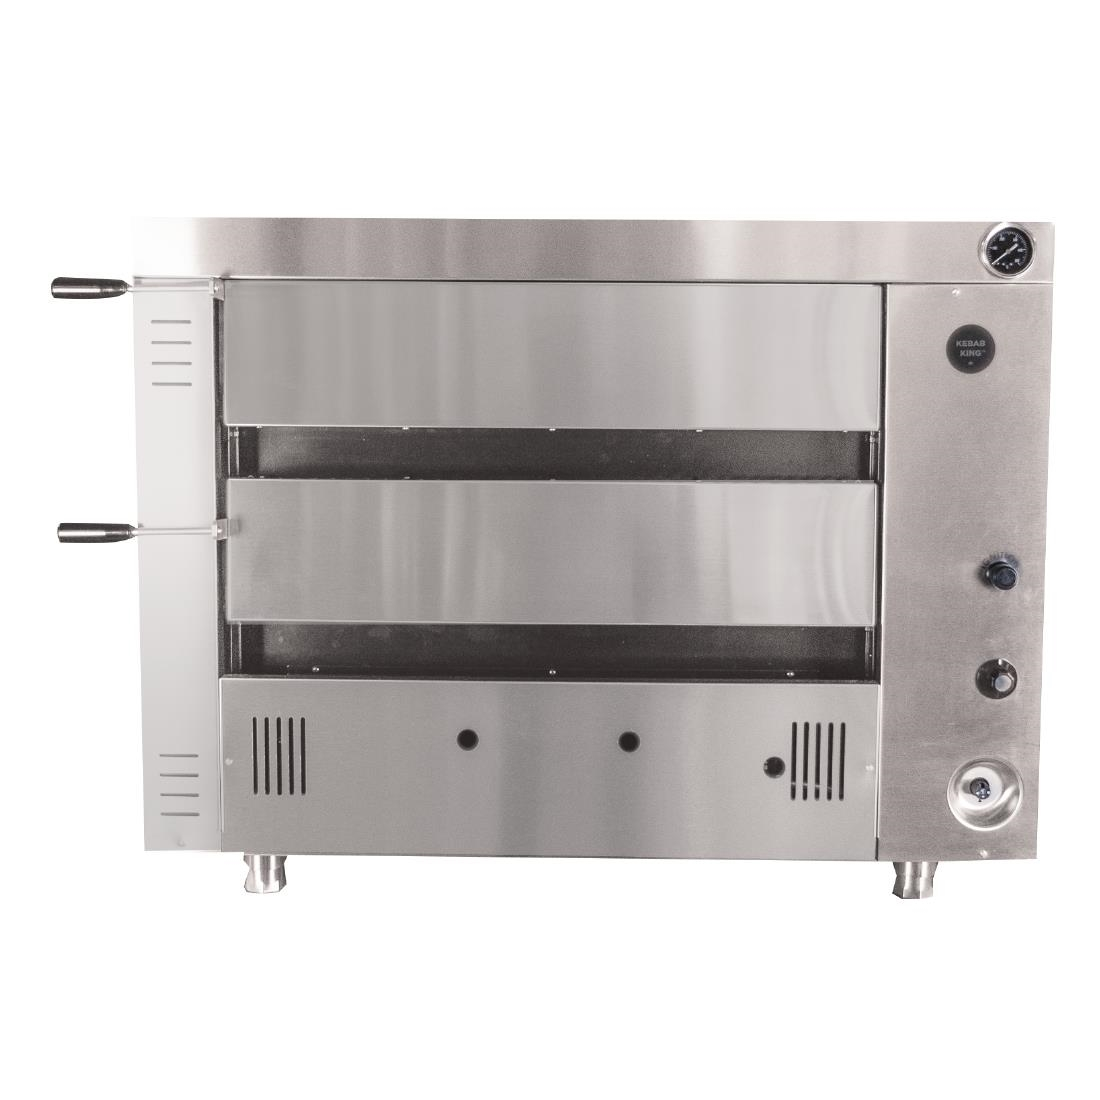 Image of Kebab King 4 Gas Pizza Oven